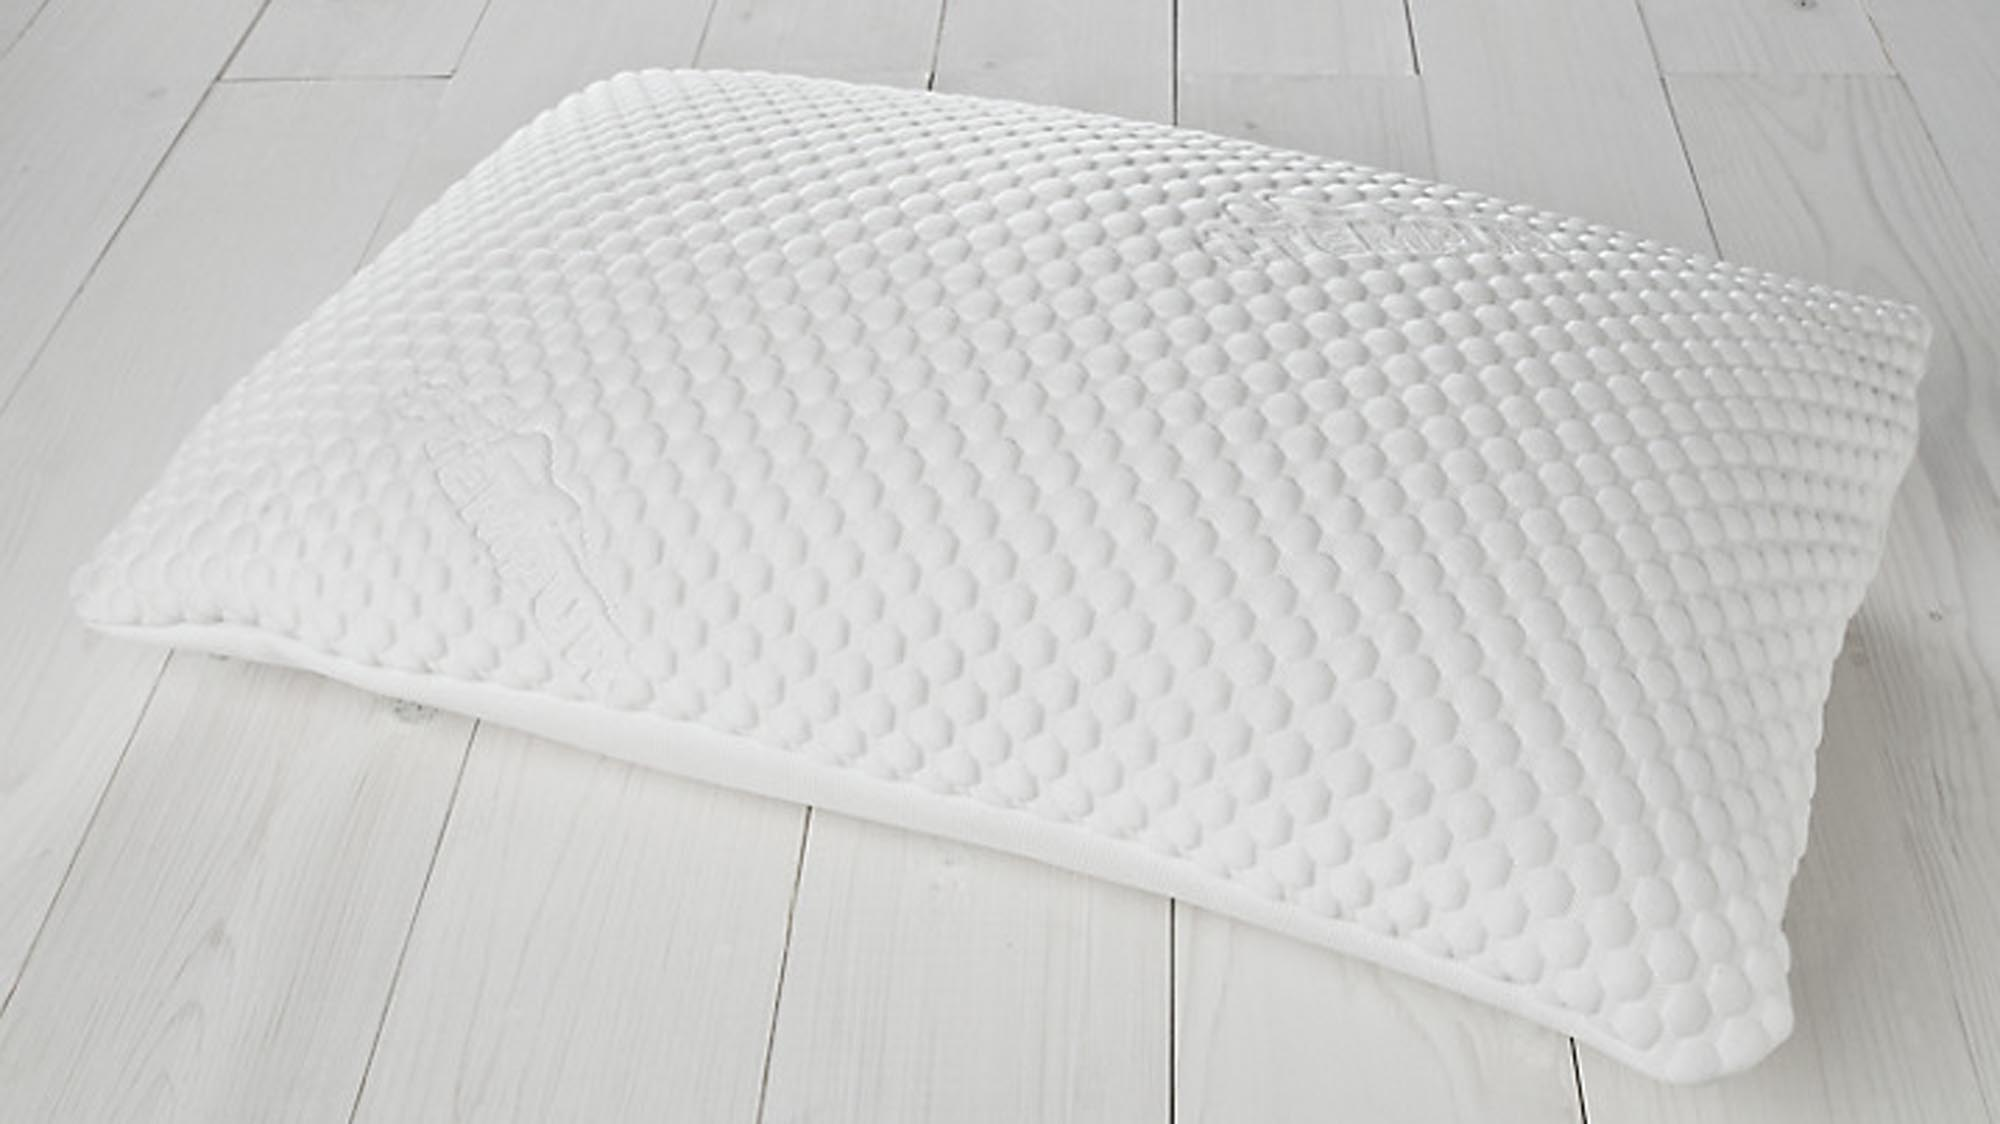 Tempur Traditional Pillow John Lewis : Best pillows: The best microfibre, memory foam, and down pillows to buy from ?9 Expert Reviews